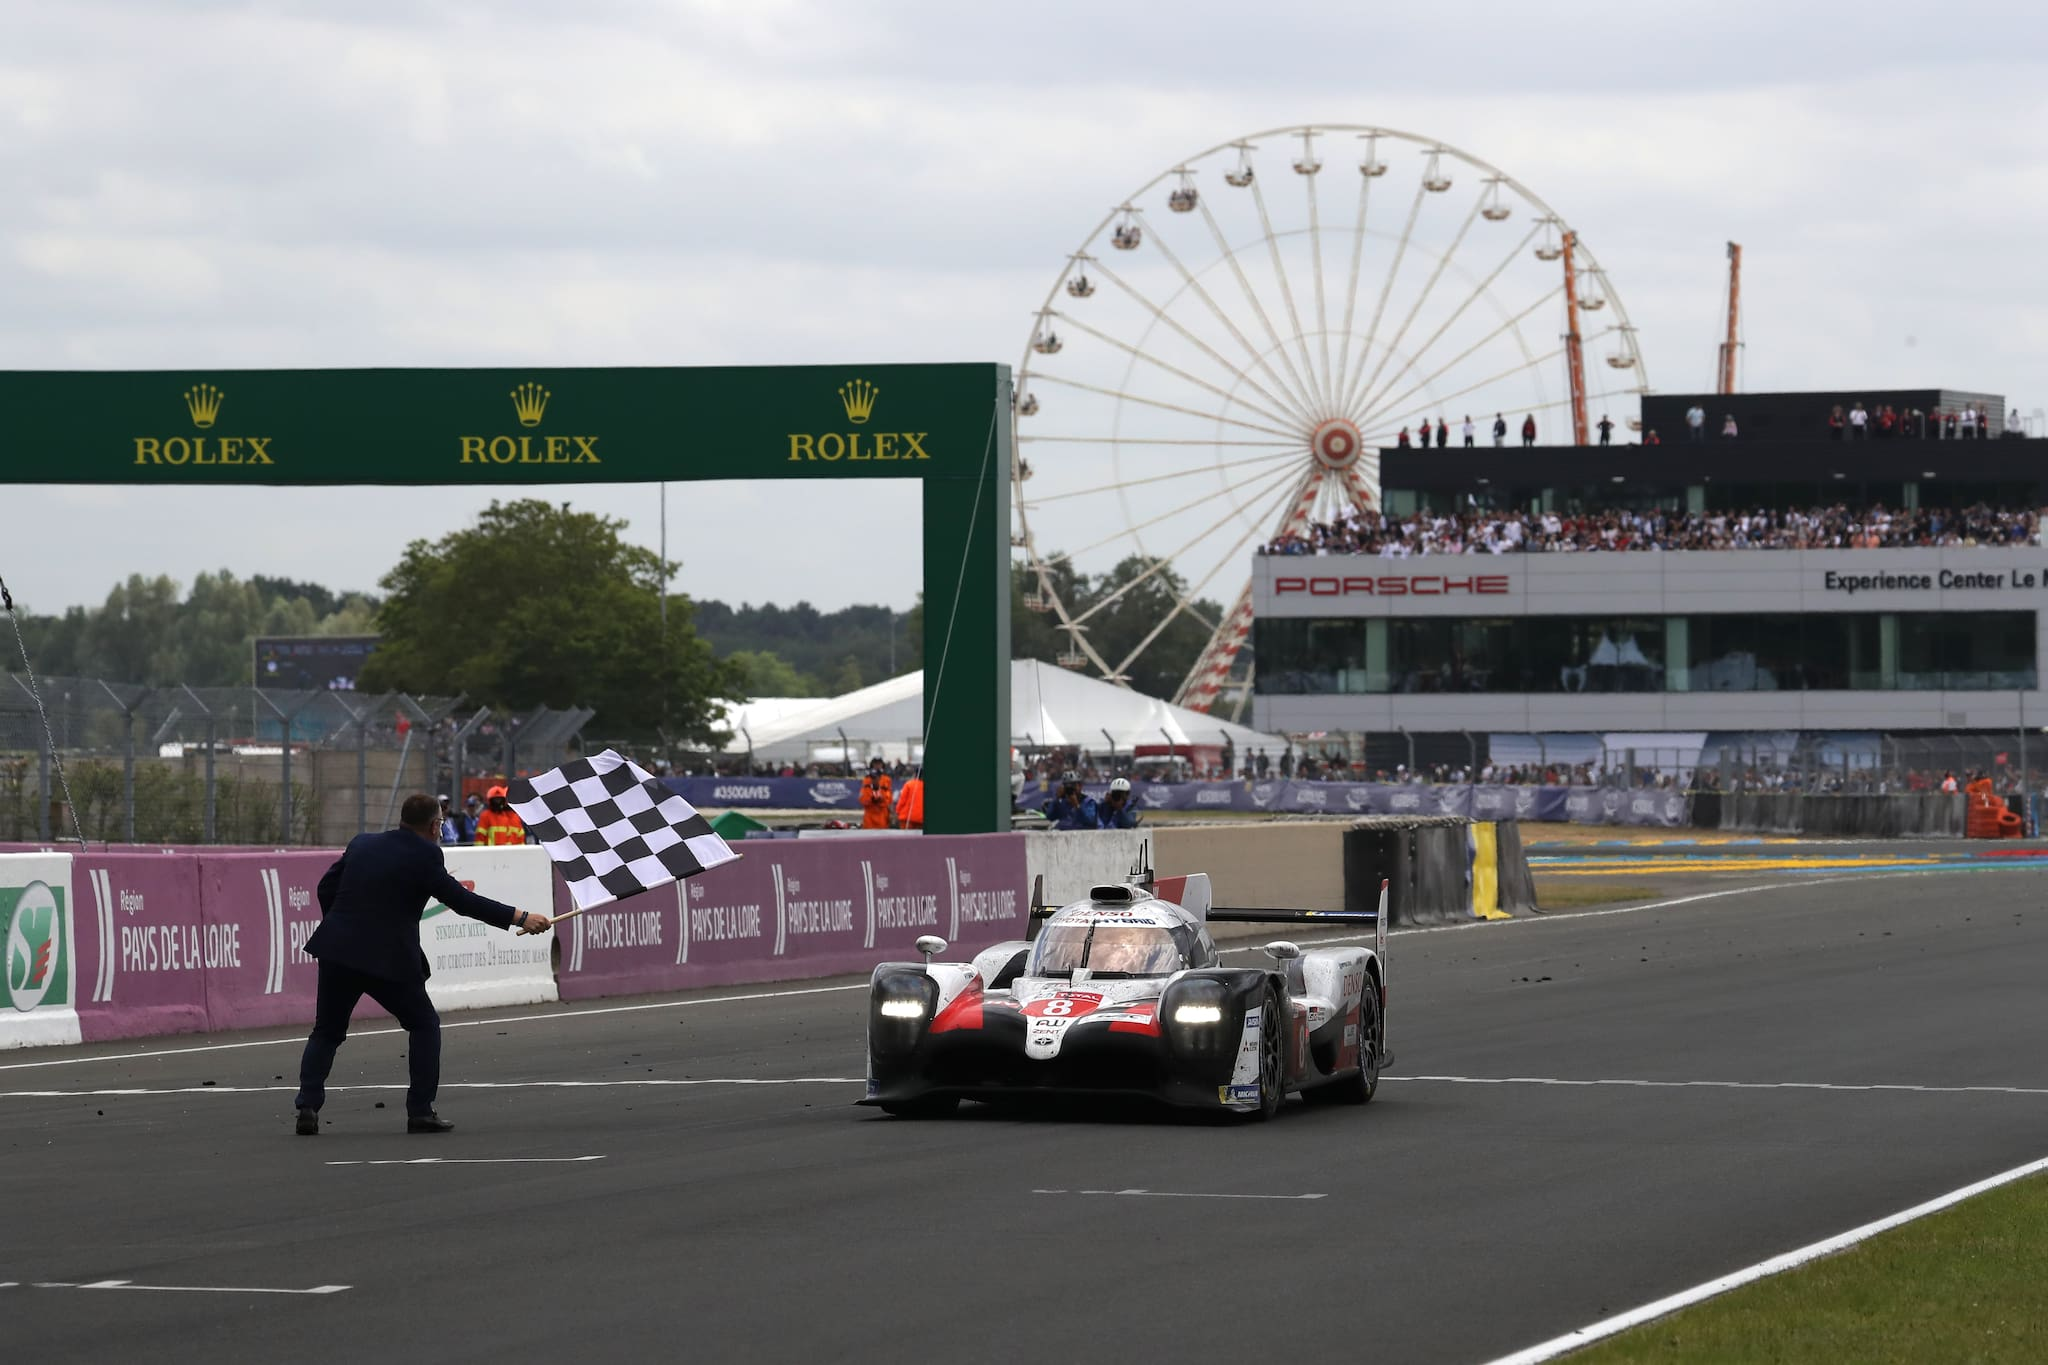 Toyota Gazoo Racing Takes 1-2 Finish at 87th Le Mans 24 Hours